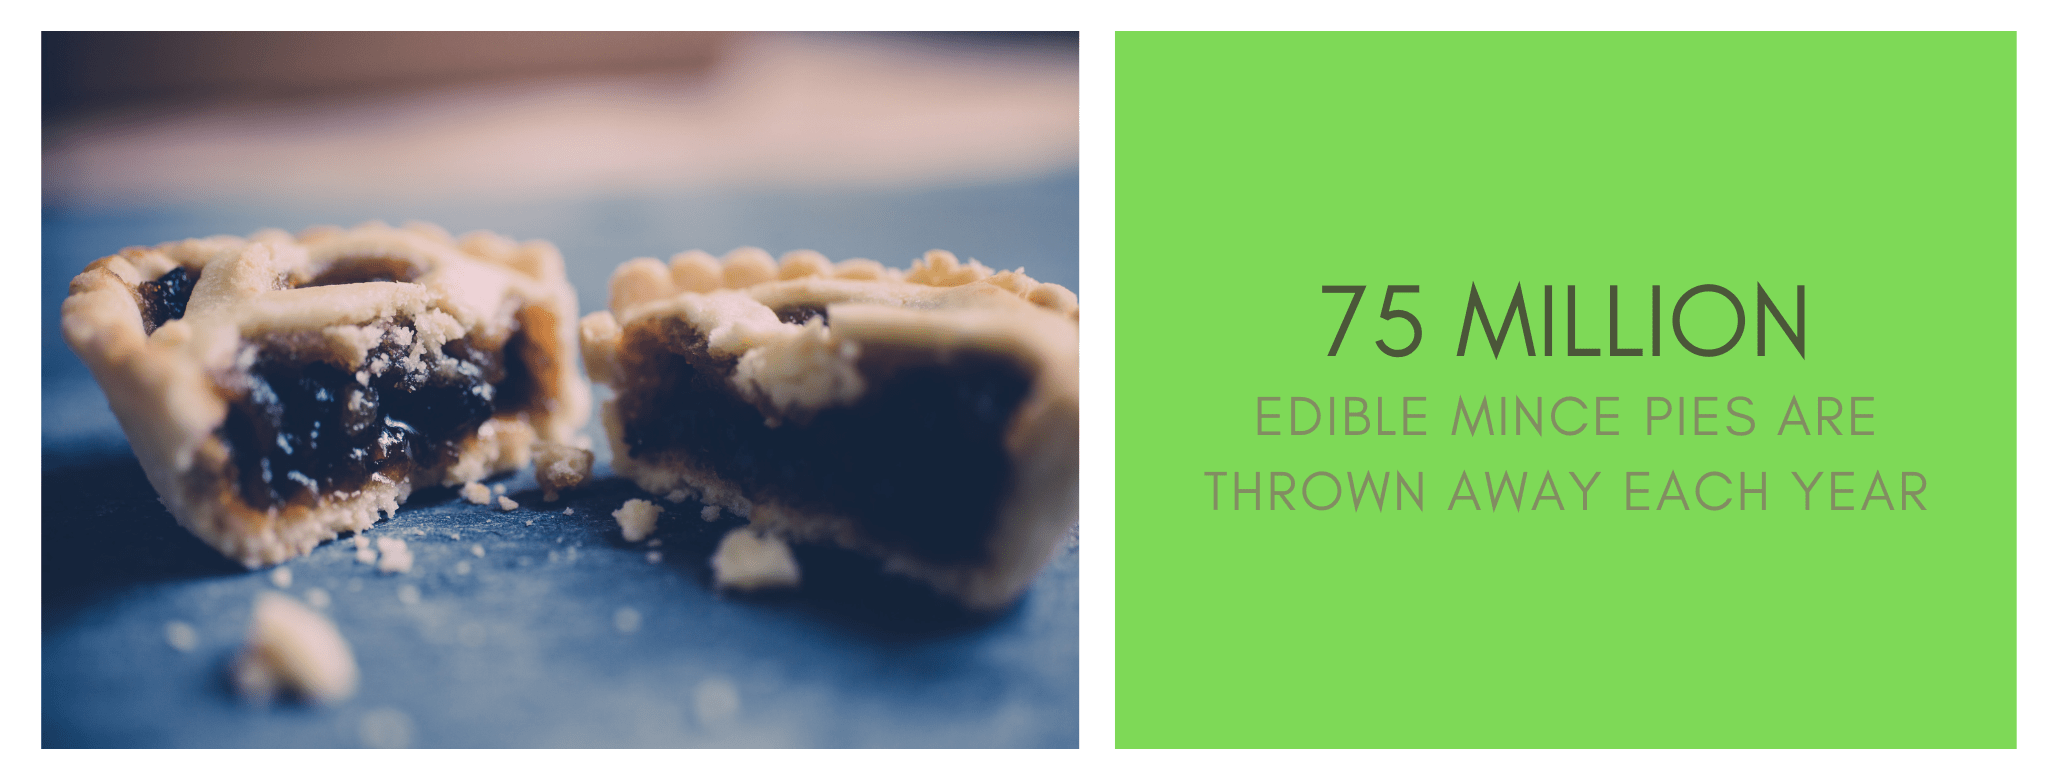 75 million edible mince pies are thrown away each Christmas